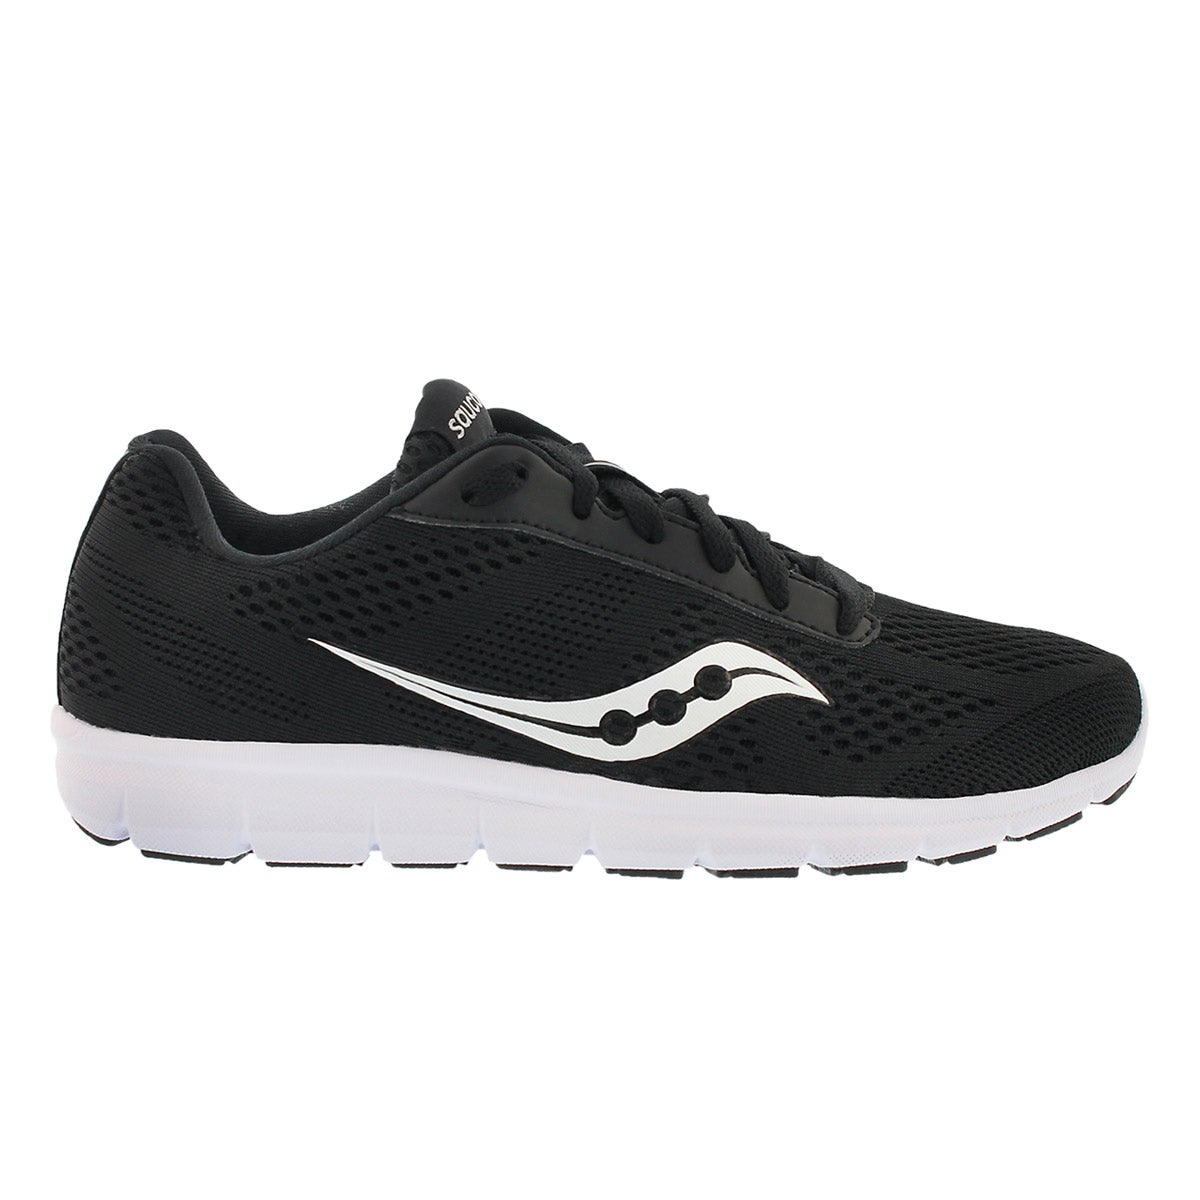 Lds Ideal blk/wht lace up running shoe